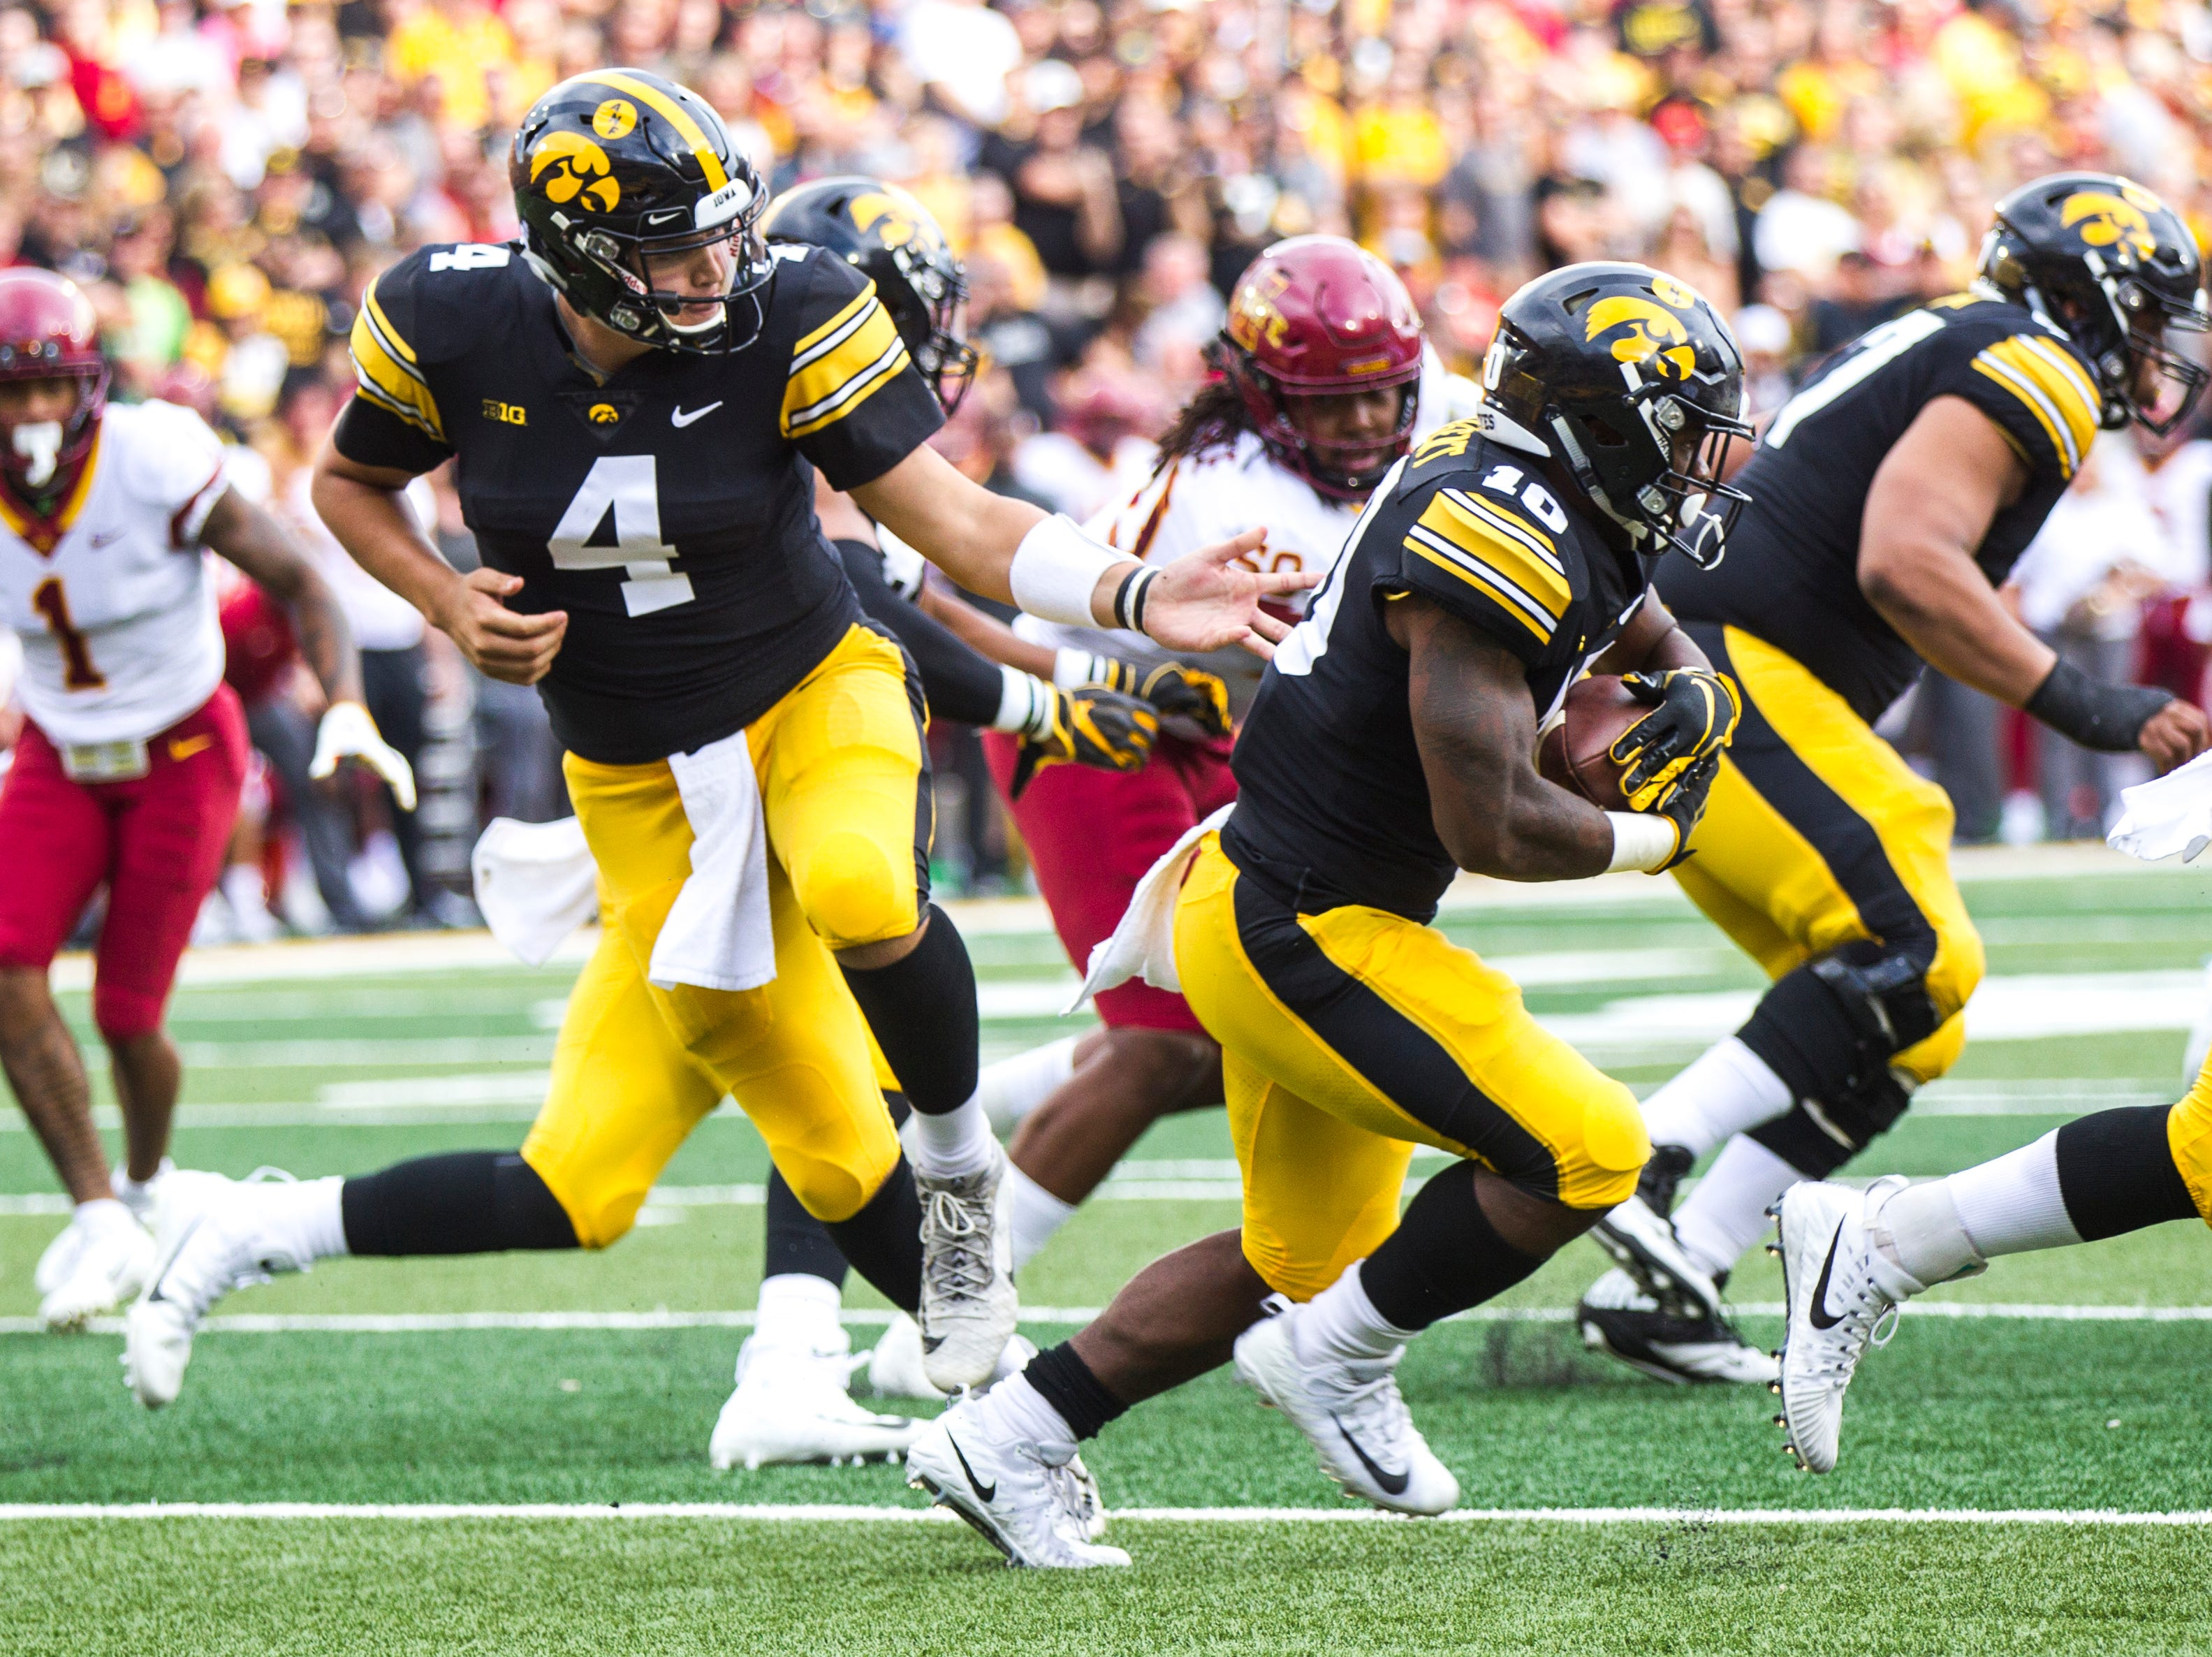 Iowa quarterback Nate Stanley (4) hands off a ball to Iowa running back Mekhi Sargent (10) during the Cy-Hawk NCAA football game on Saturday, Sept. 8, 2018, at Kinnick Stadium in Iowa City.